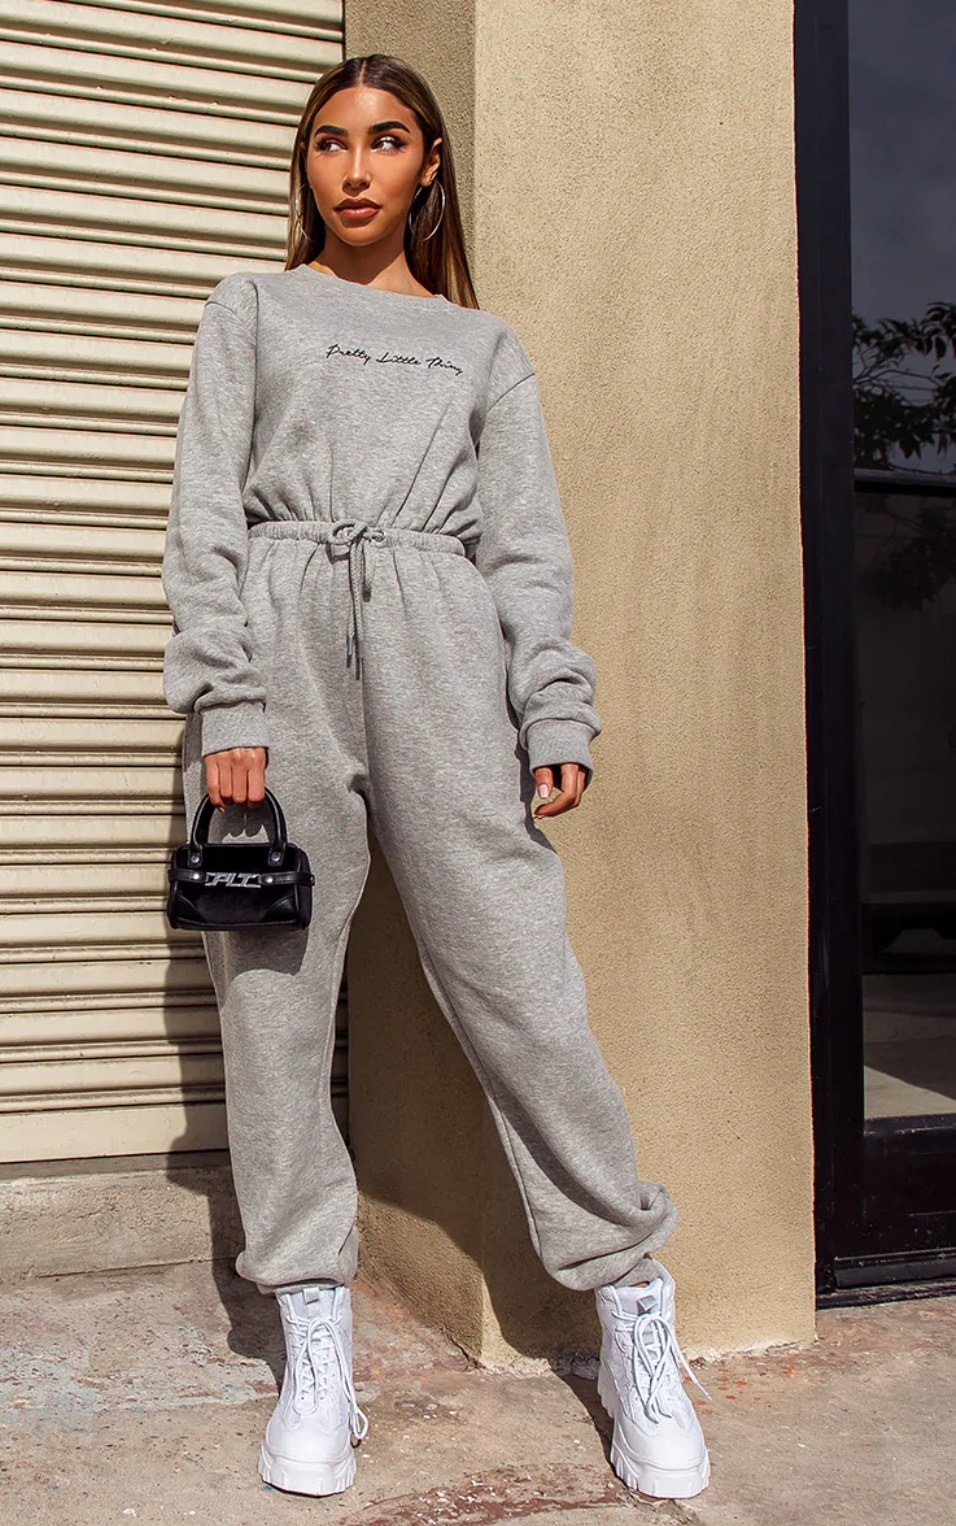 model wearing the gray sweatsuit with white boots and a small black handbag